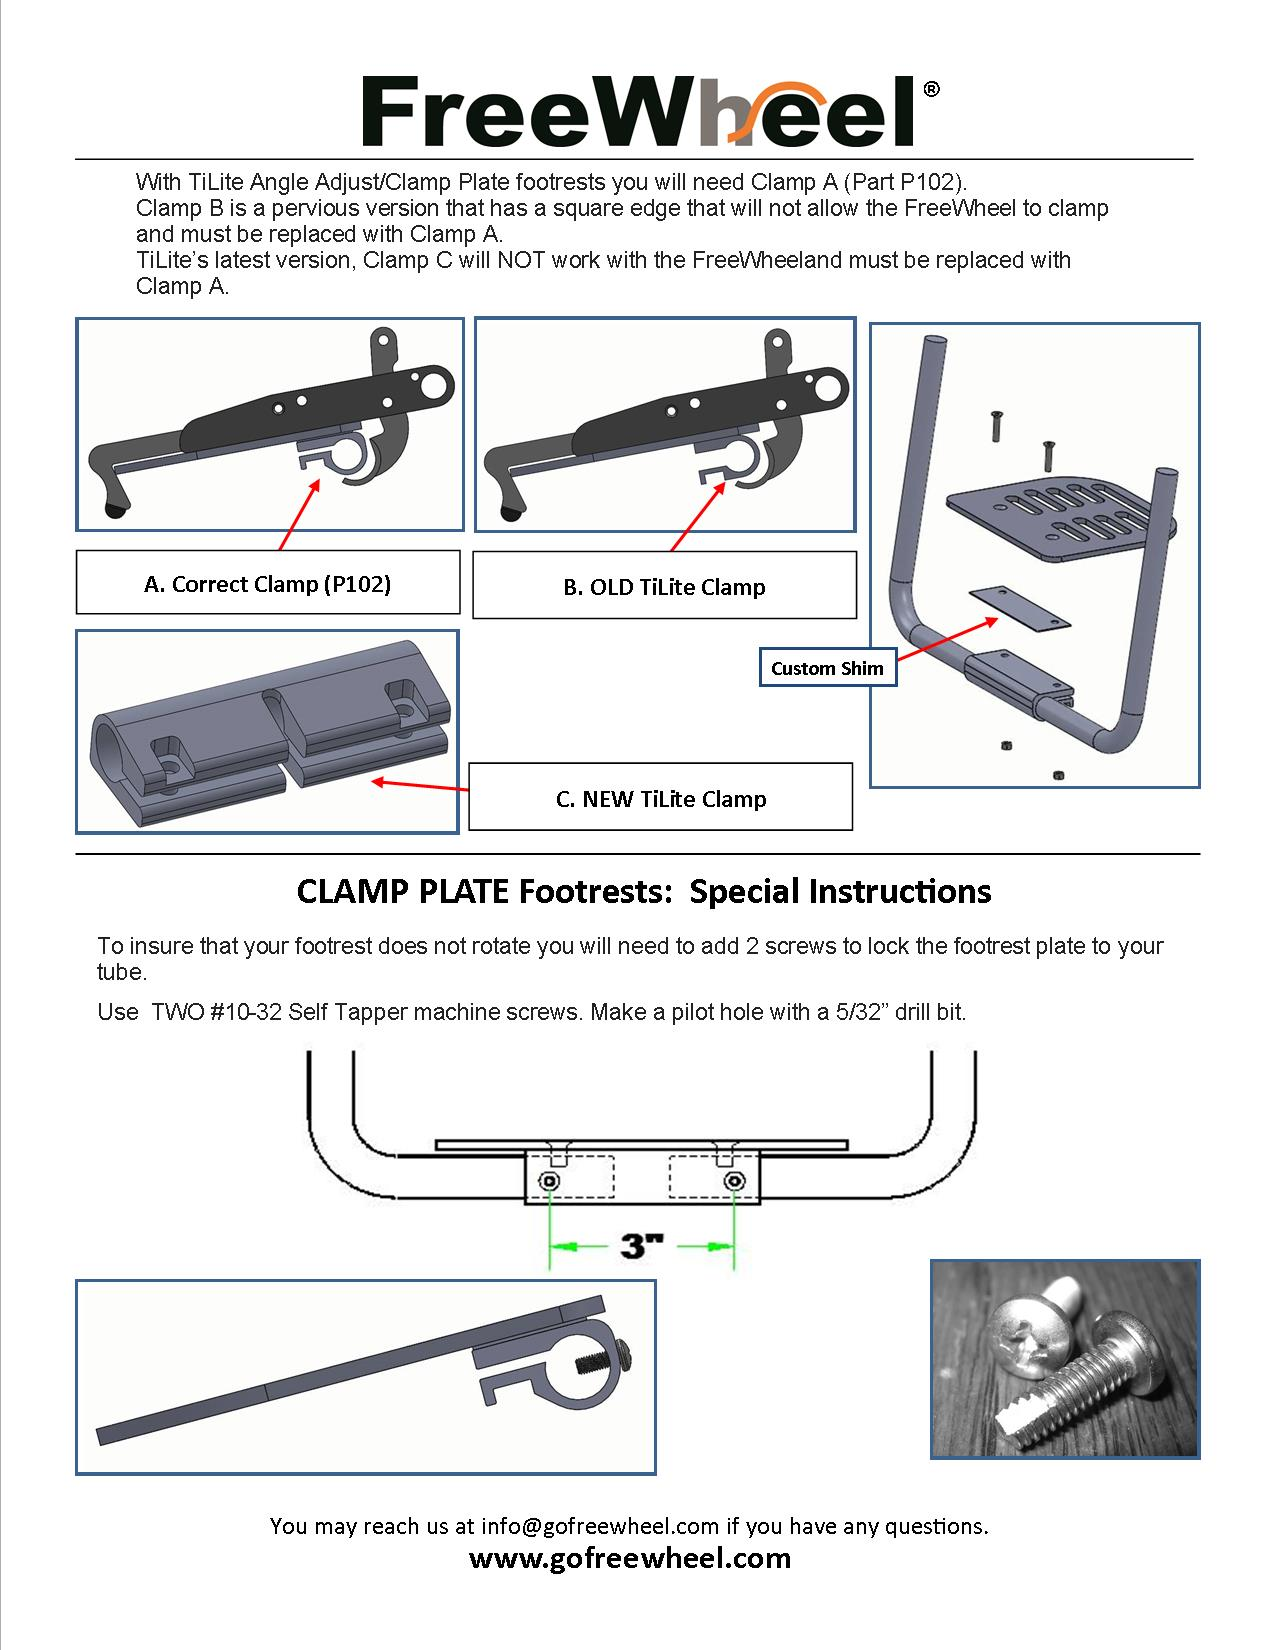 fw-tilite-clamp-and-pinning-2018.jpg